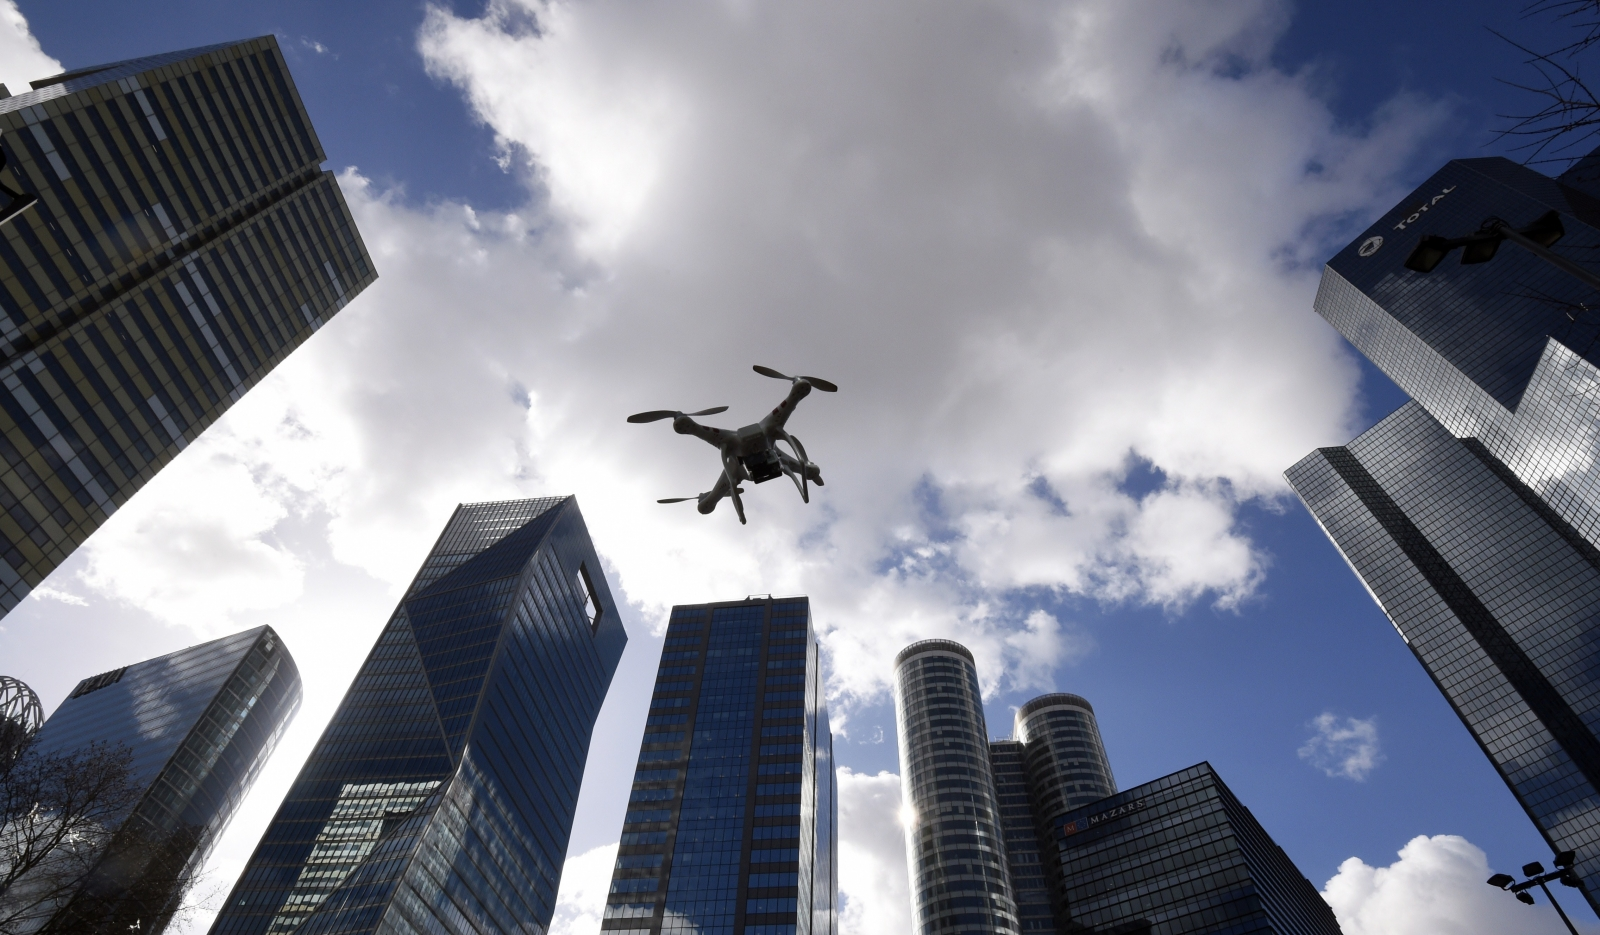 Flying drones in the city not allowed